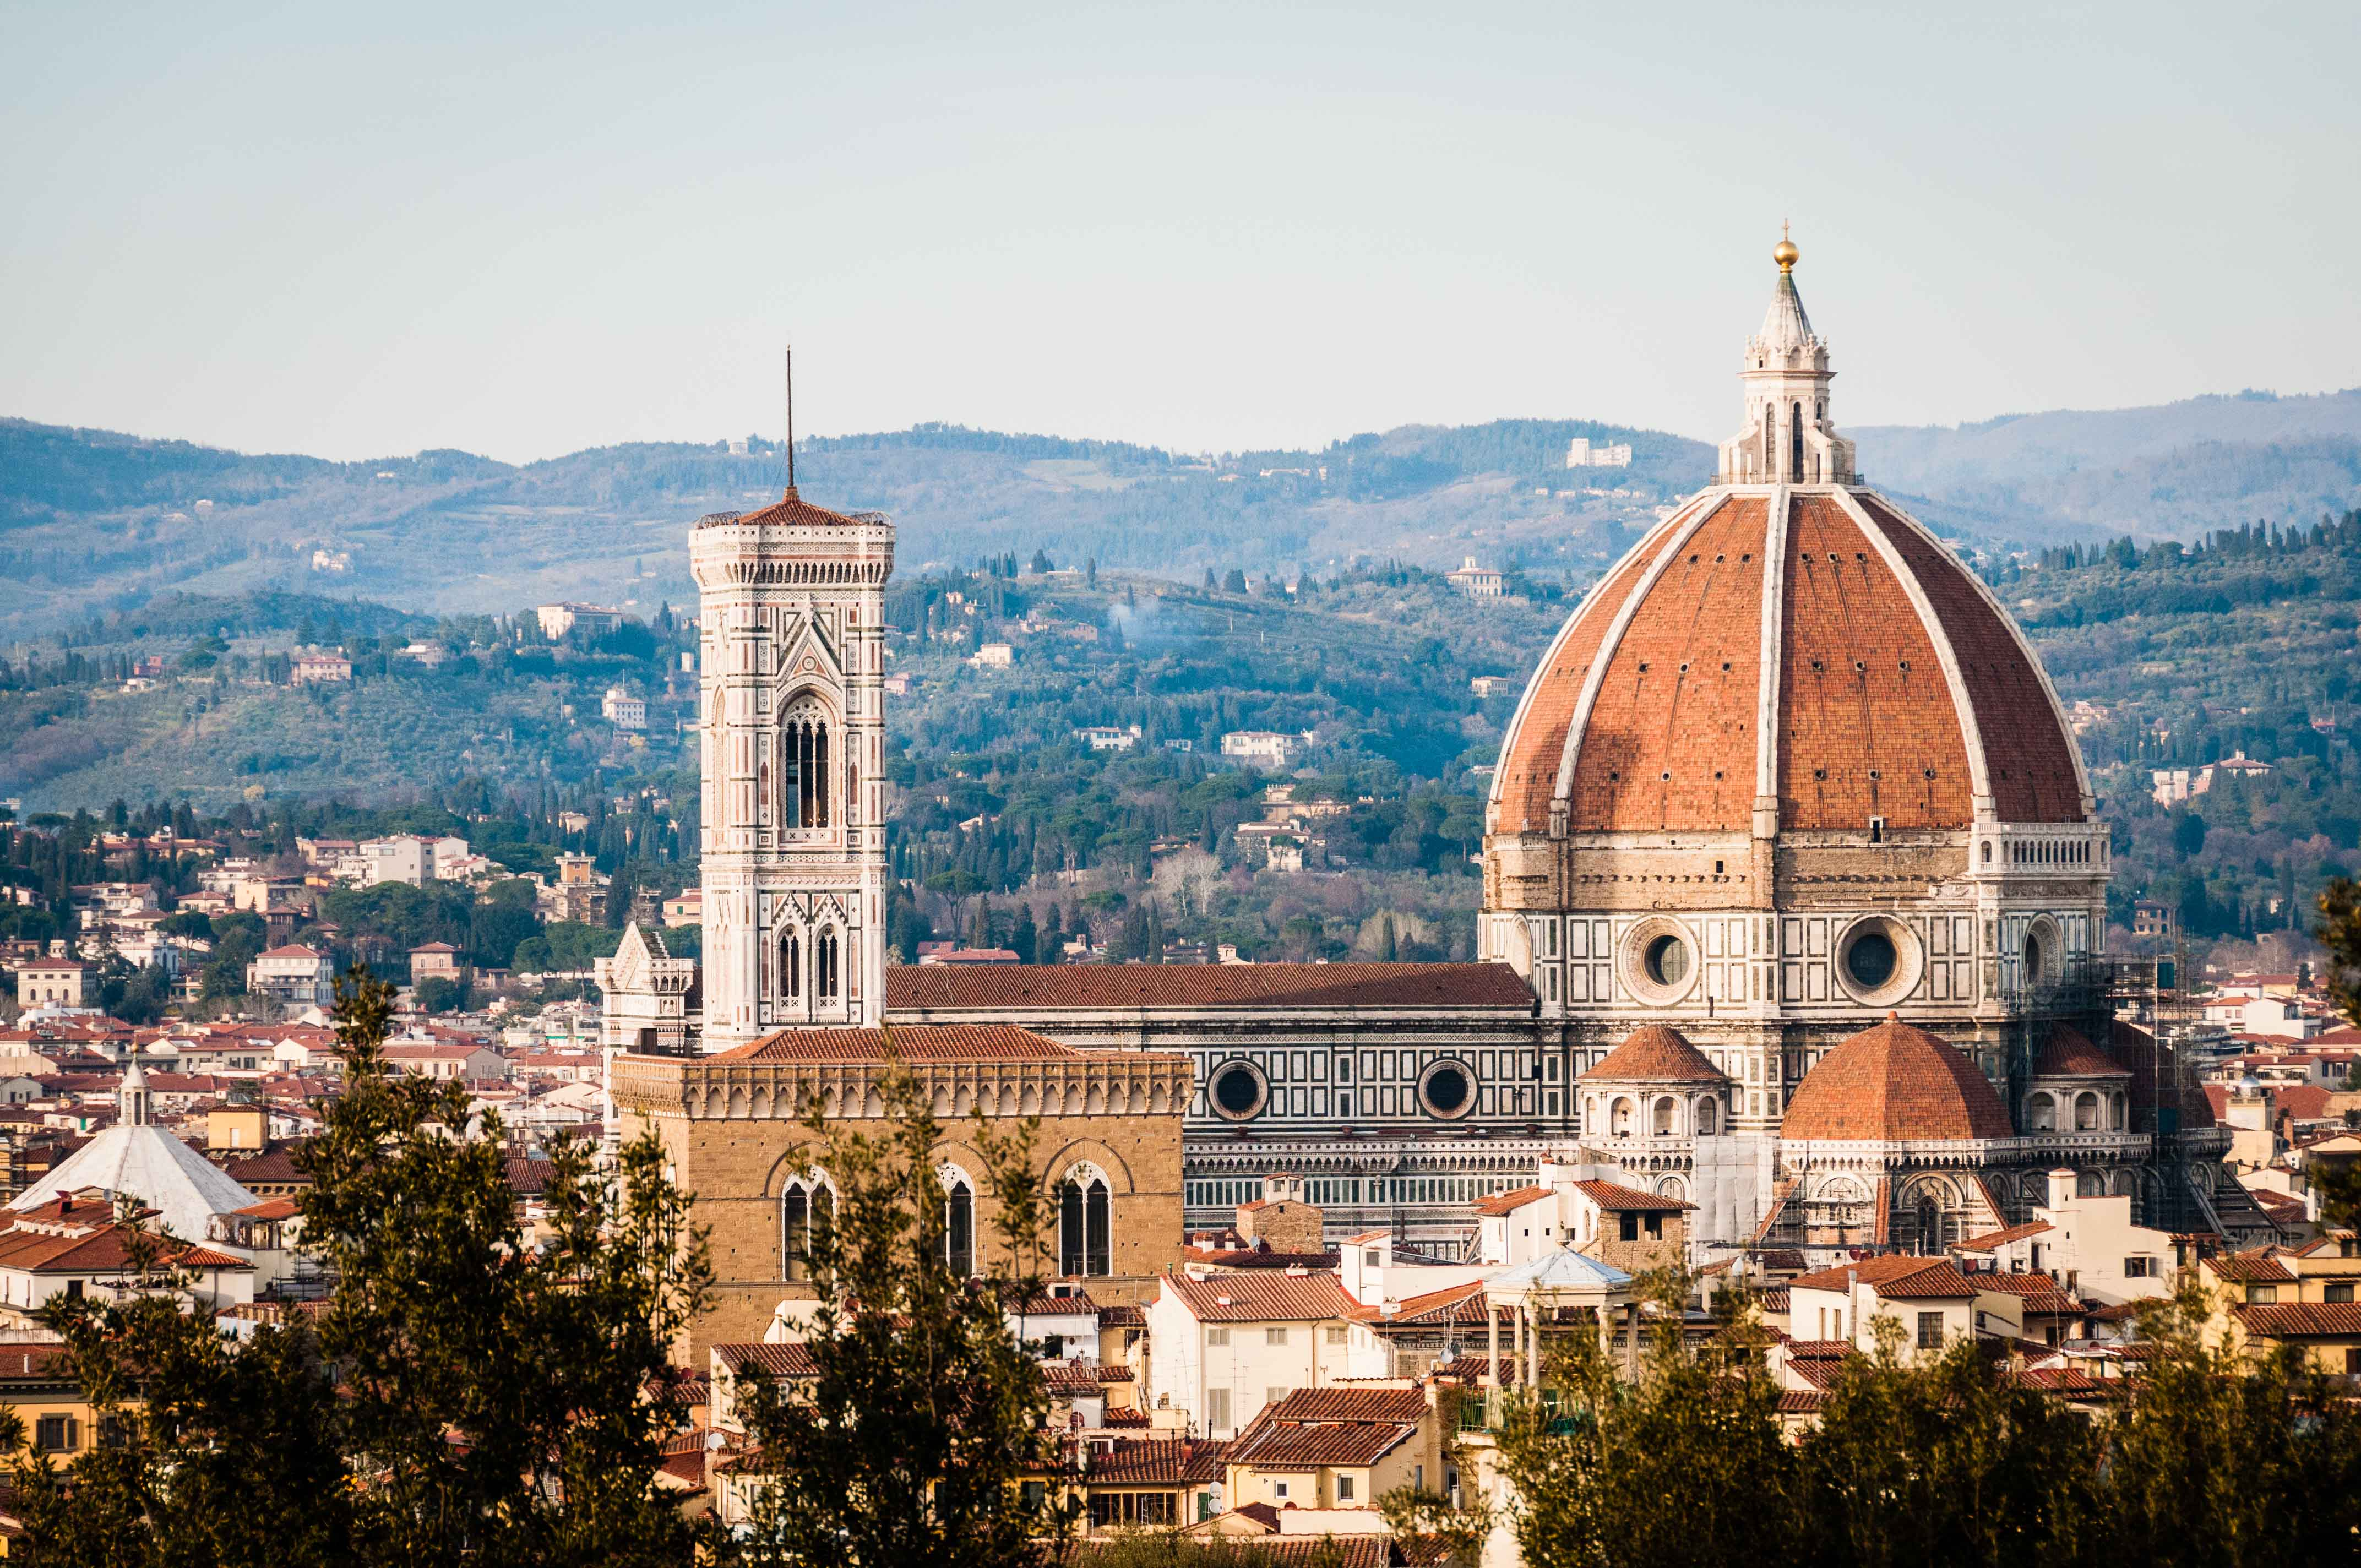 Florence Italy: Day 3 | On The Edge Of Focus